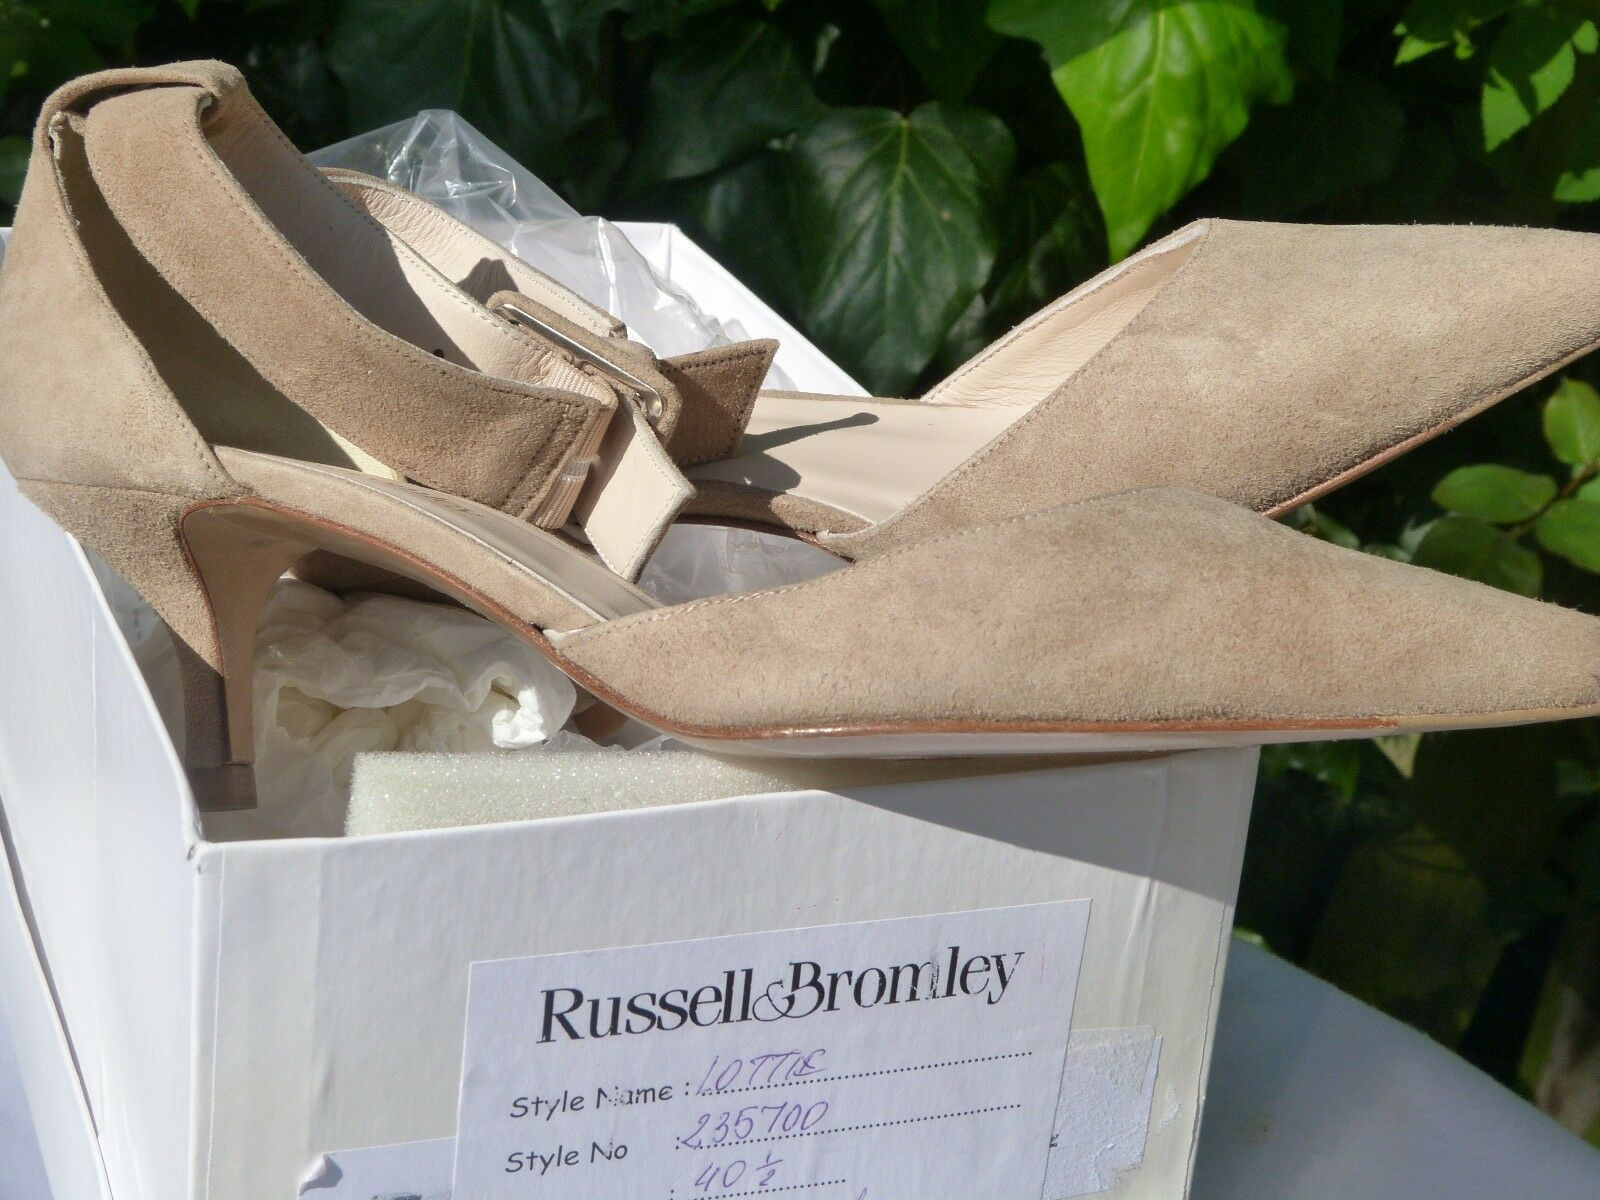 RussellBromley women's shoes size 4.5 40.5 taupe sapatos femininos wedding